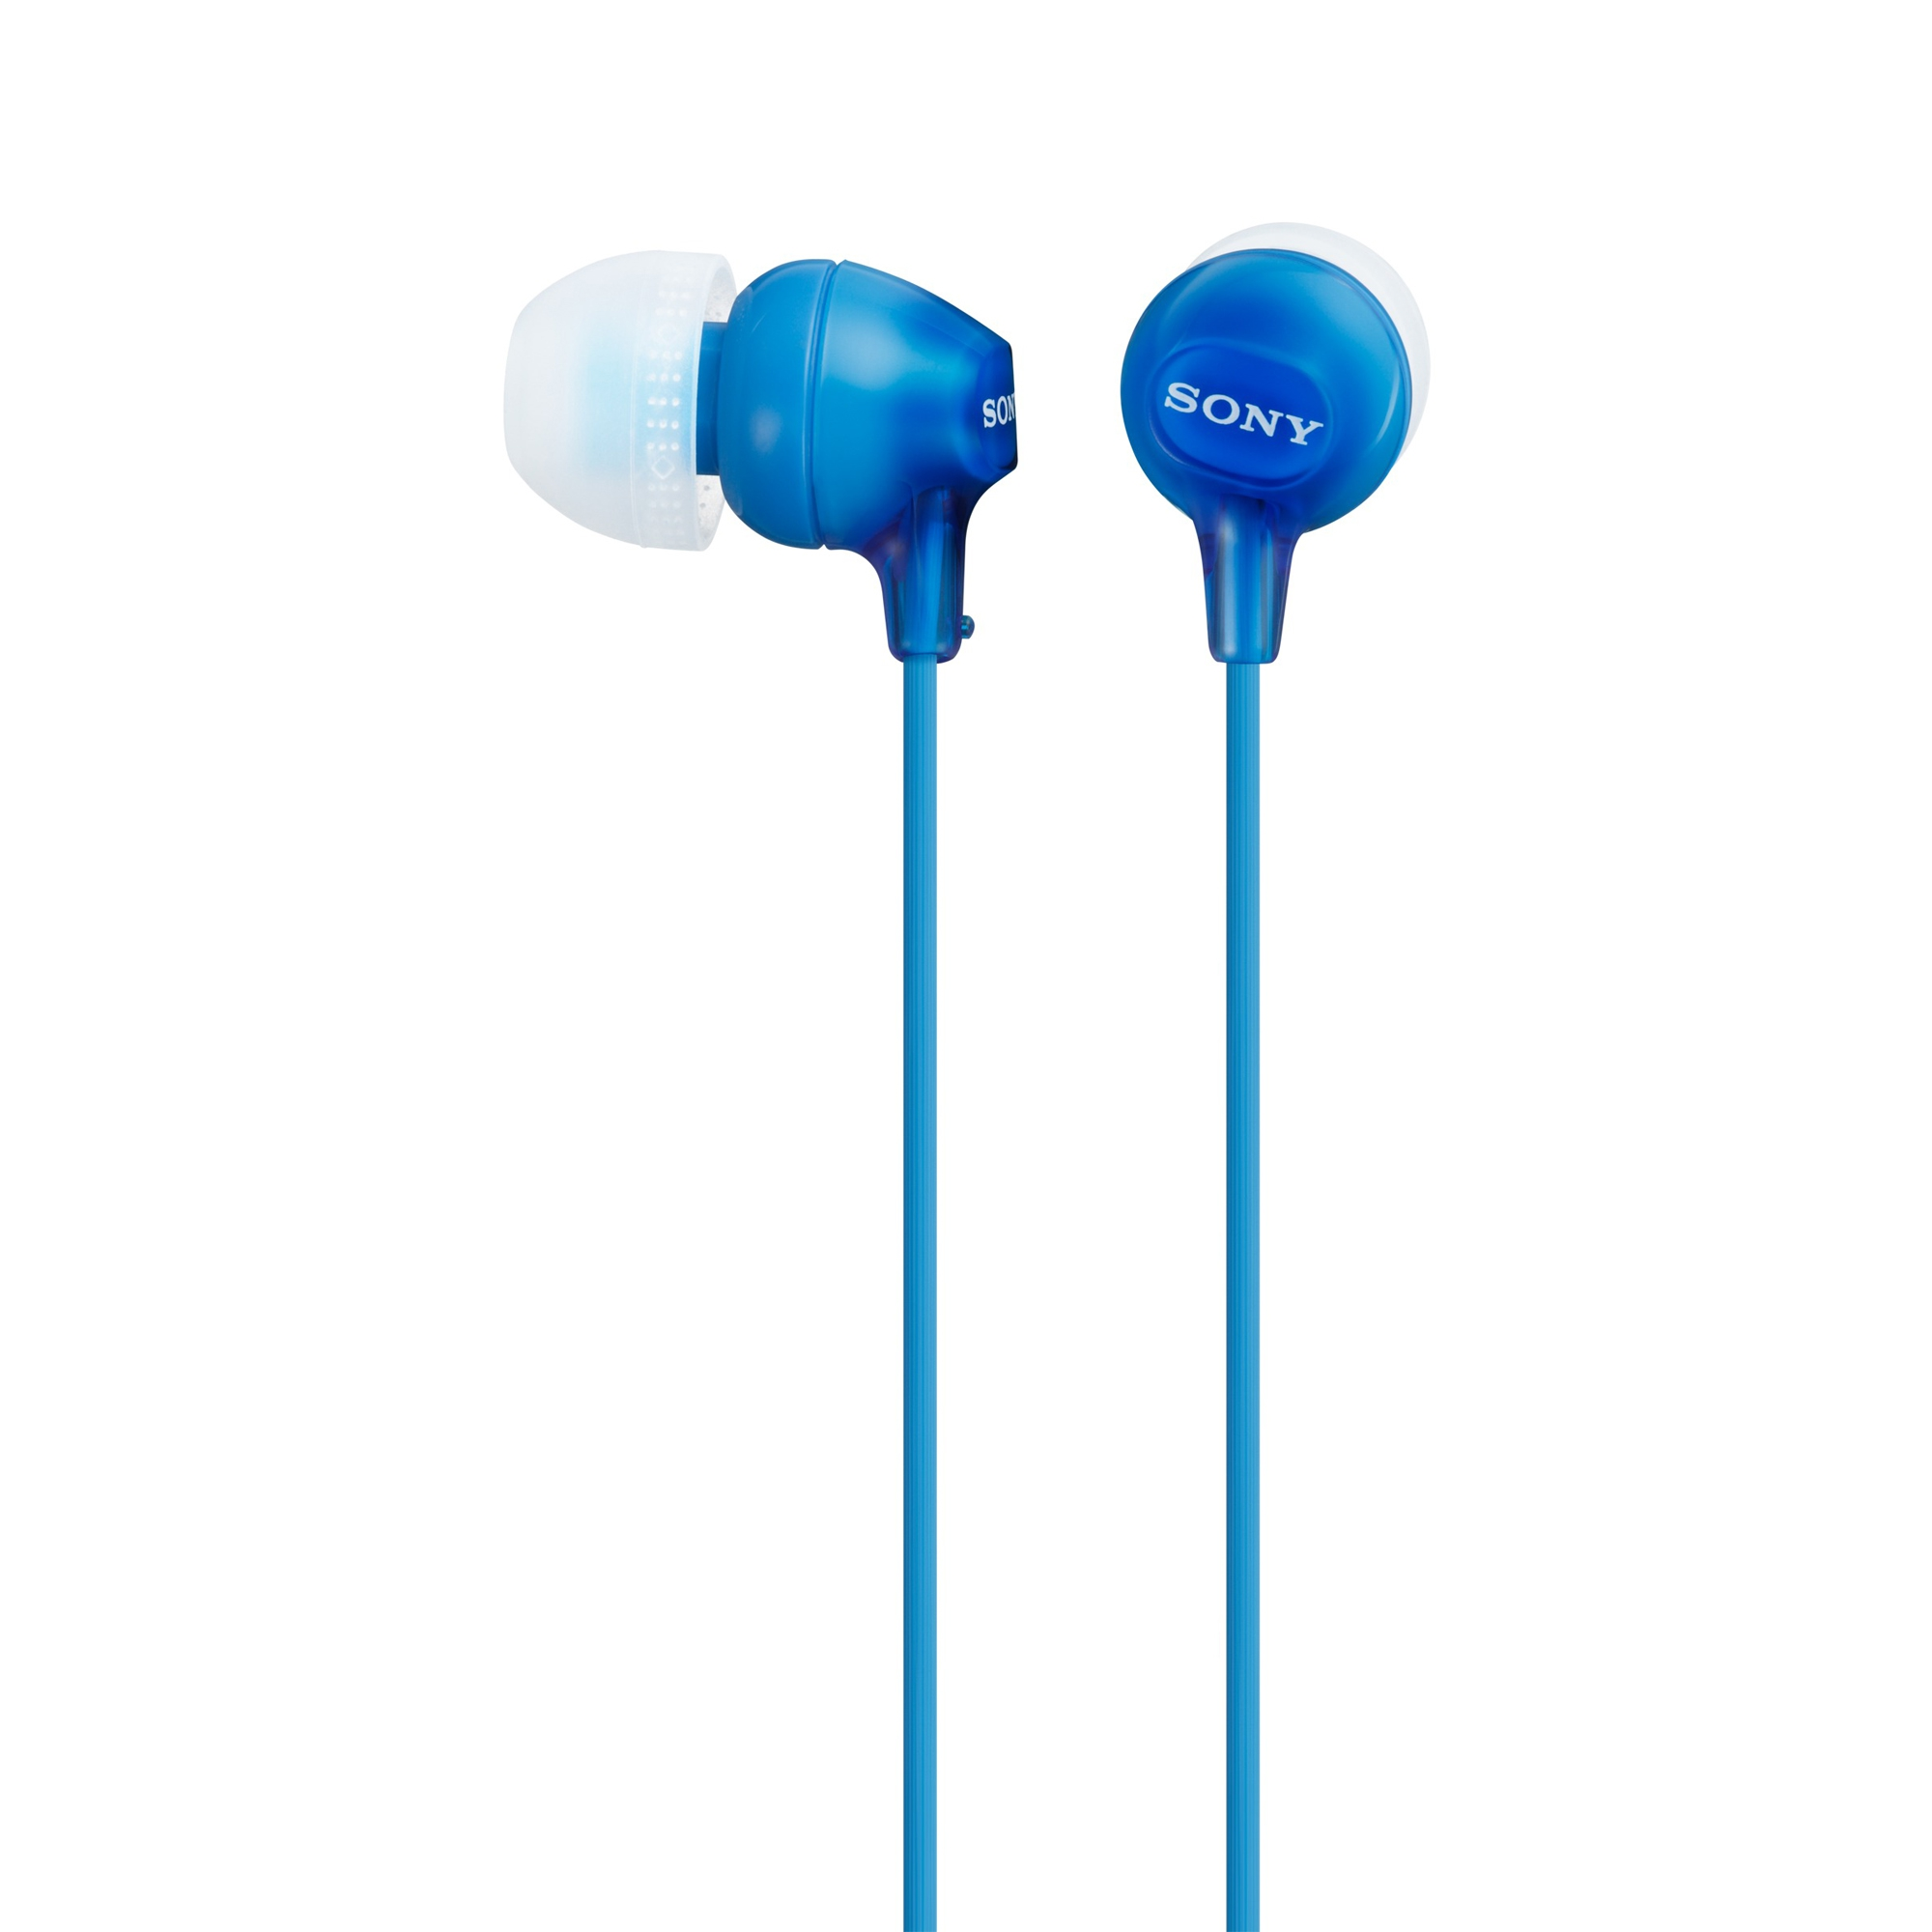 Sony Fashion Color EX Series Earbuds - Blue